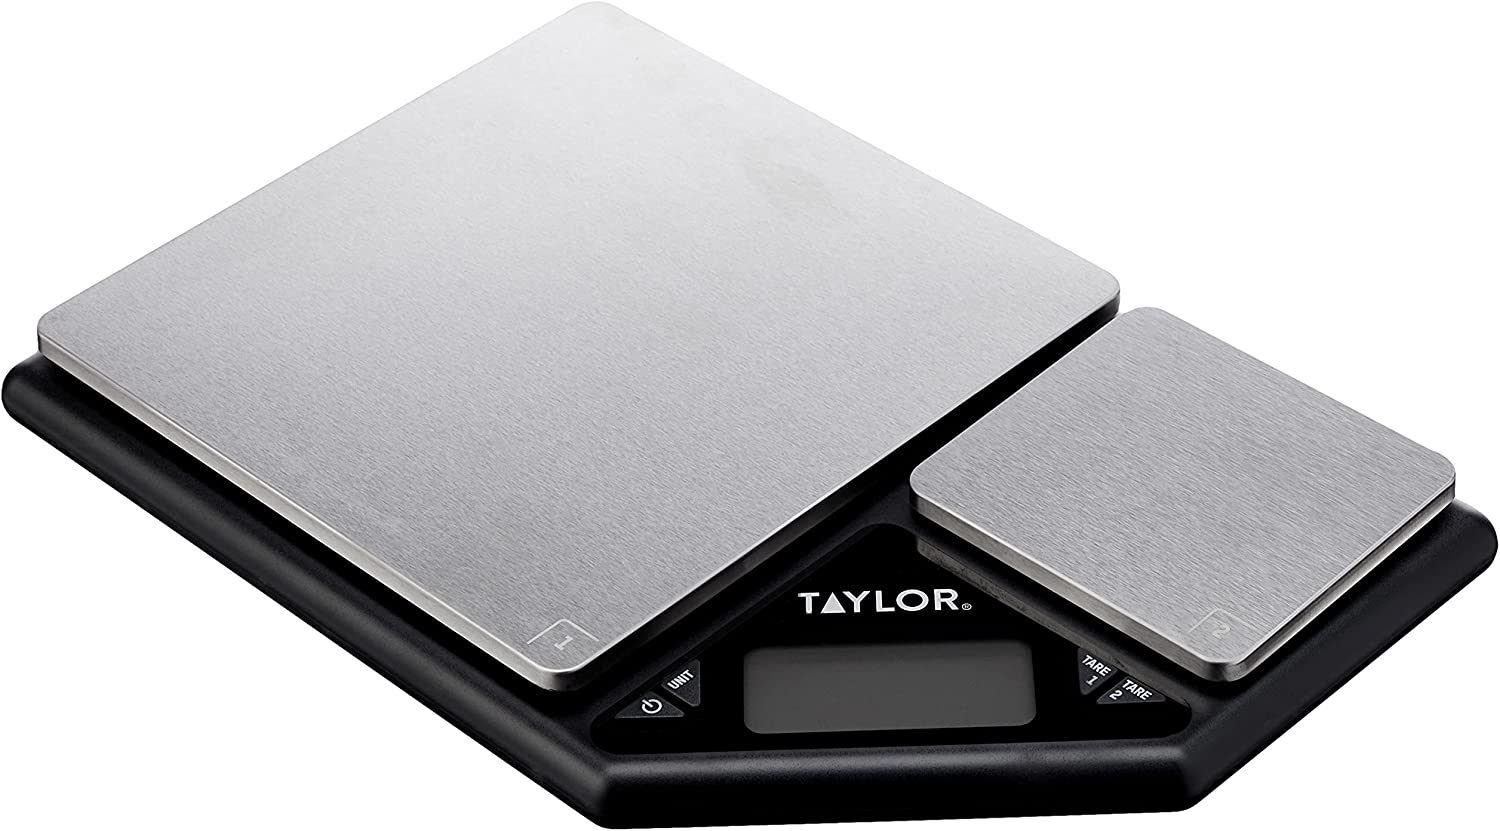 Taylor Pro Digital Kitchen Food Scales with Dual Platform Weighi